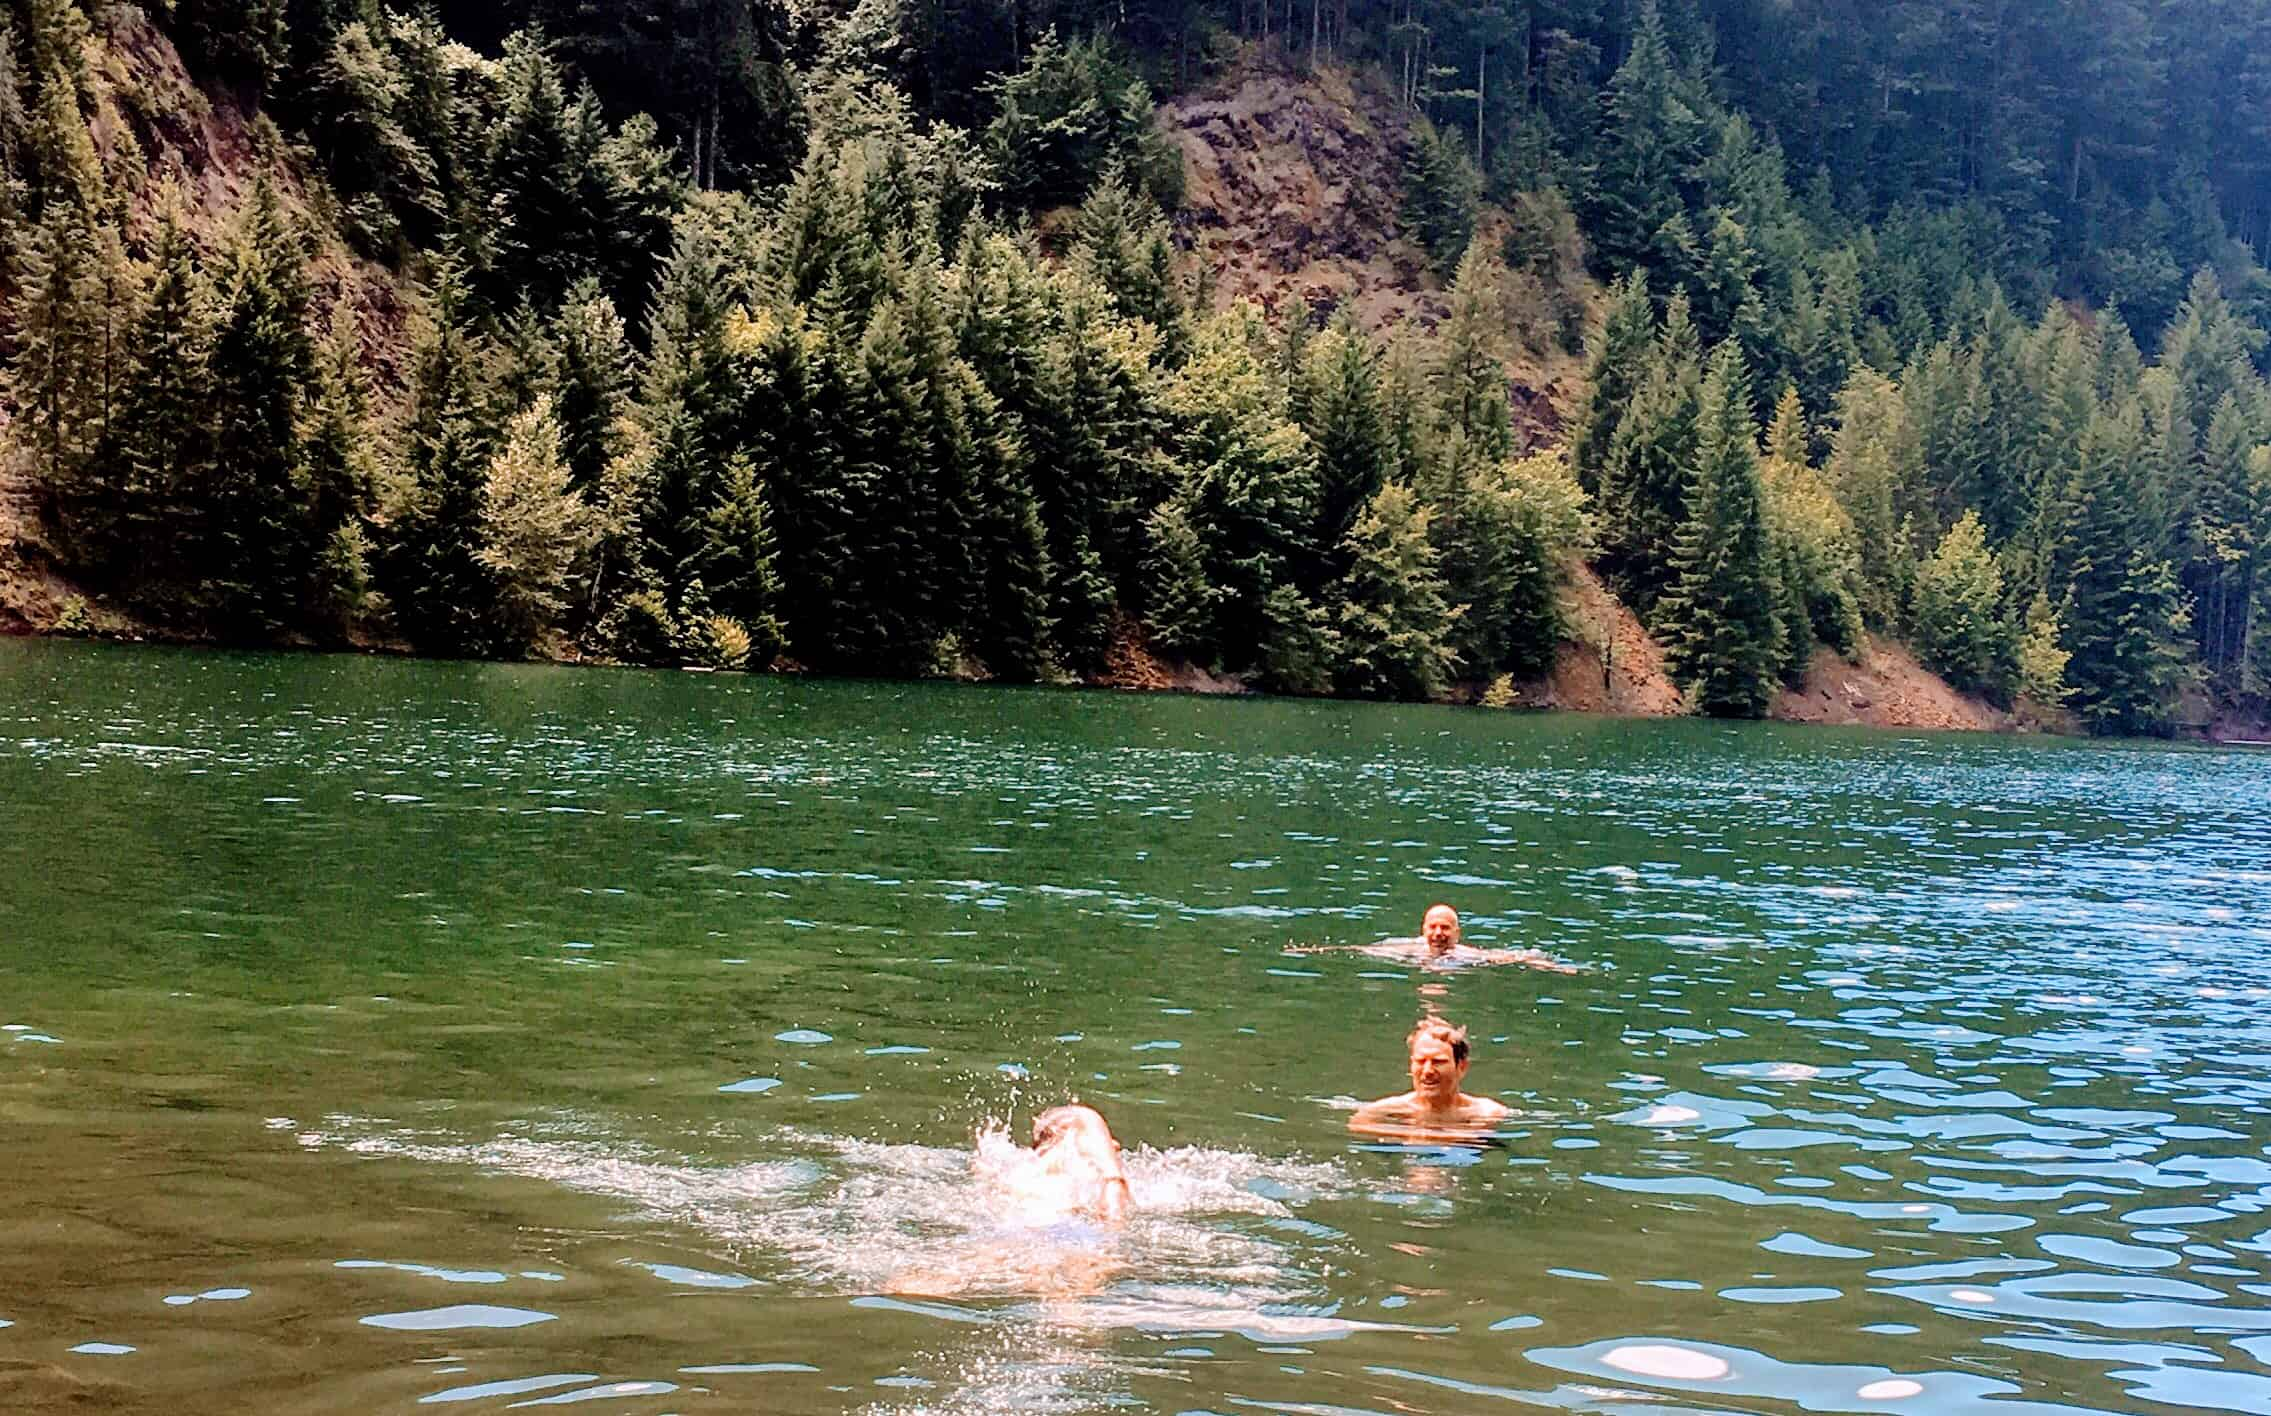 Cyclists swimming in Cougar Reservoir after gravel descent